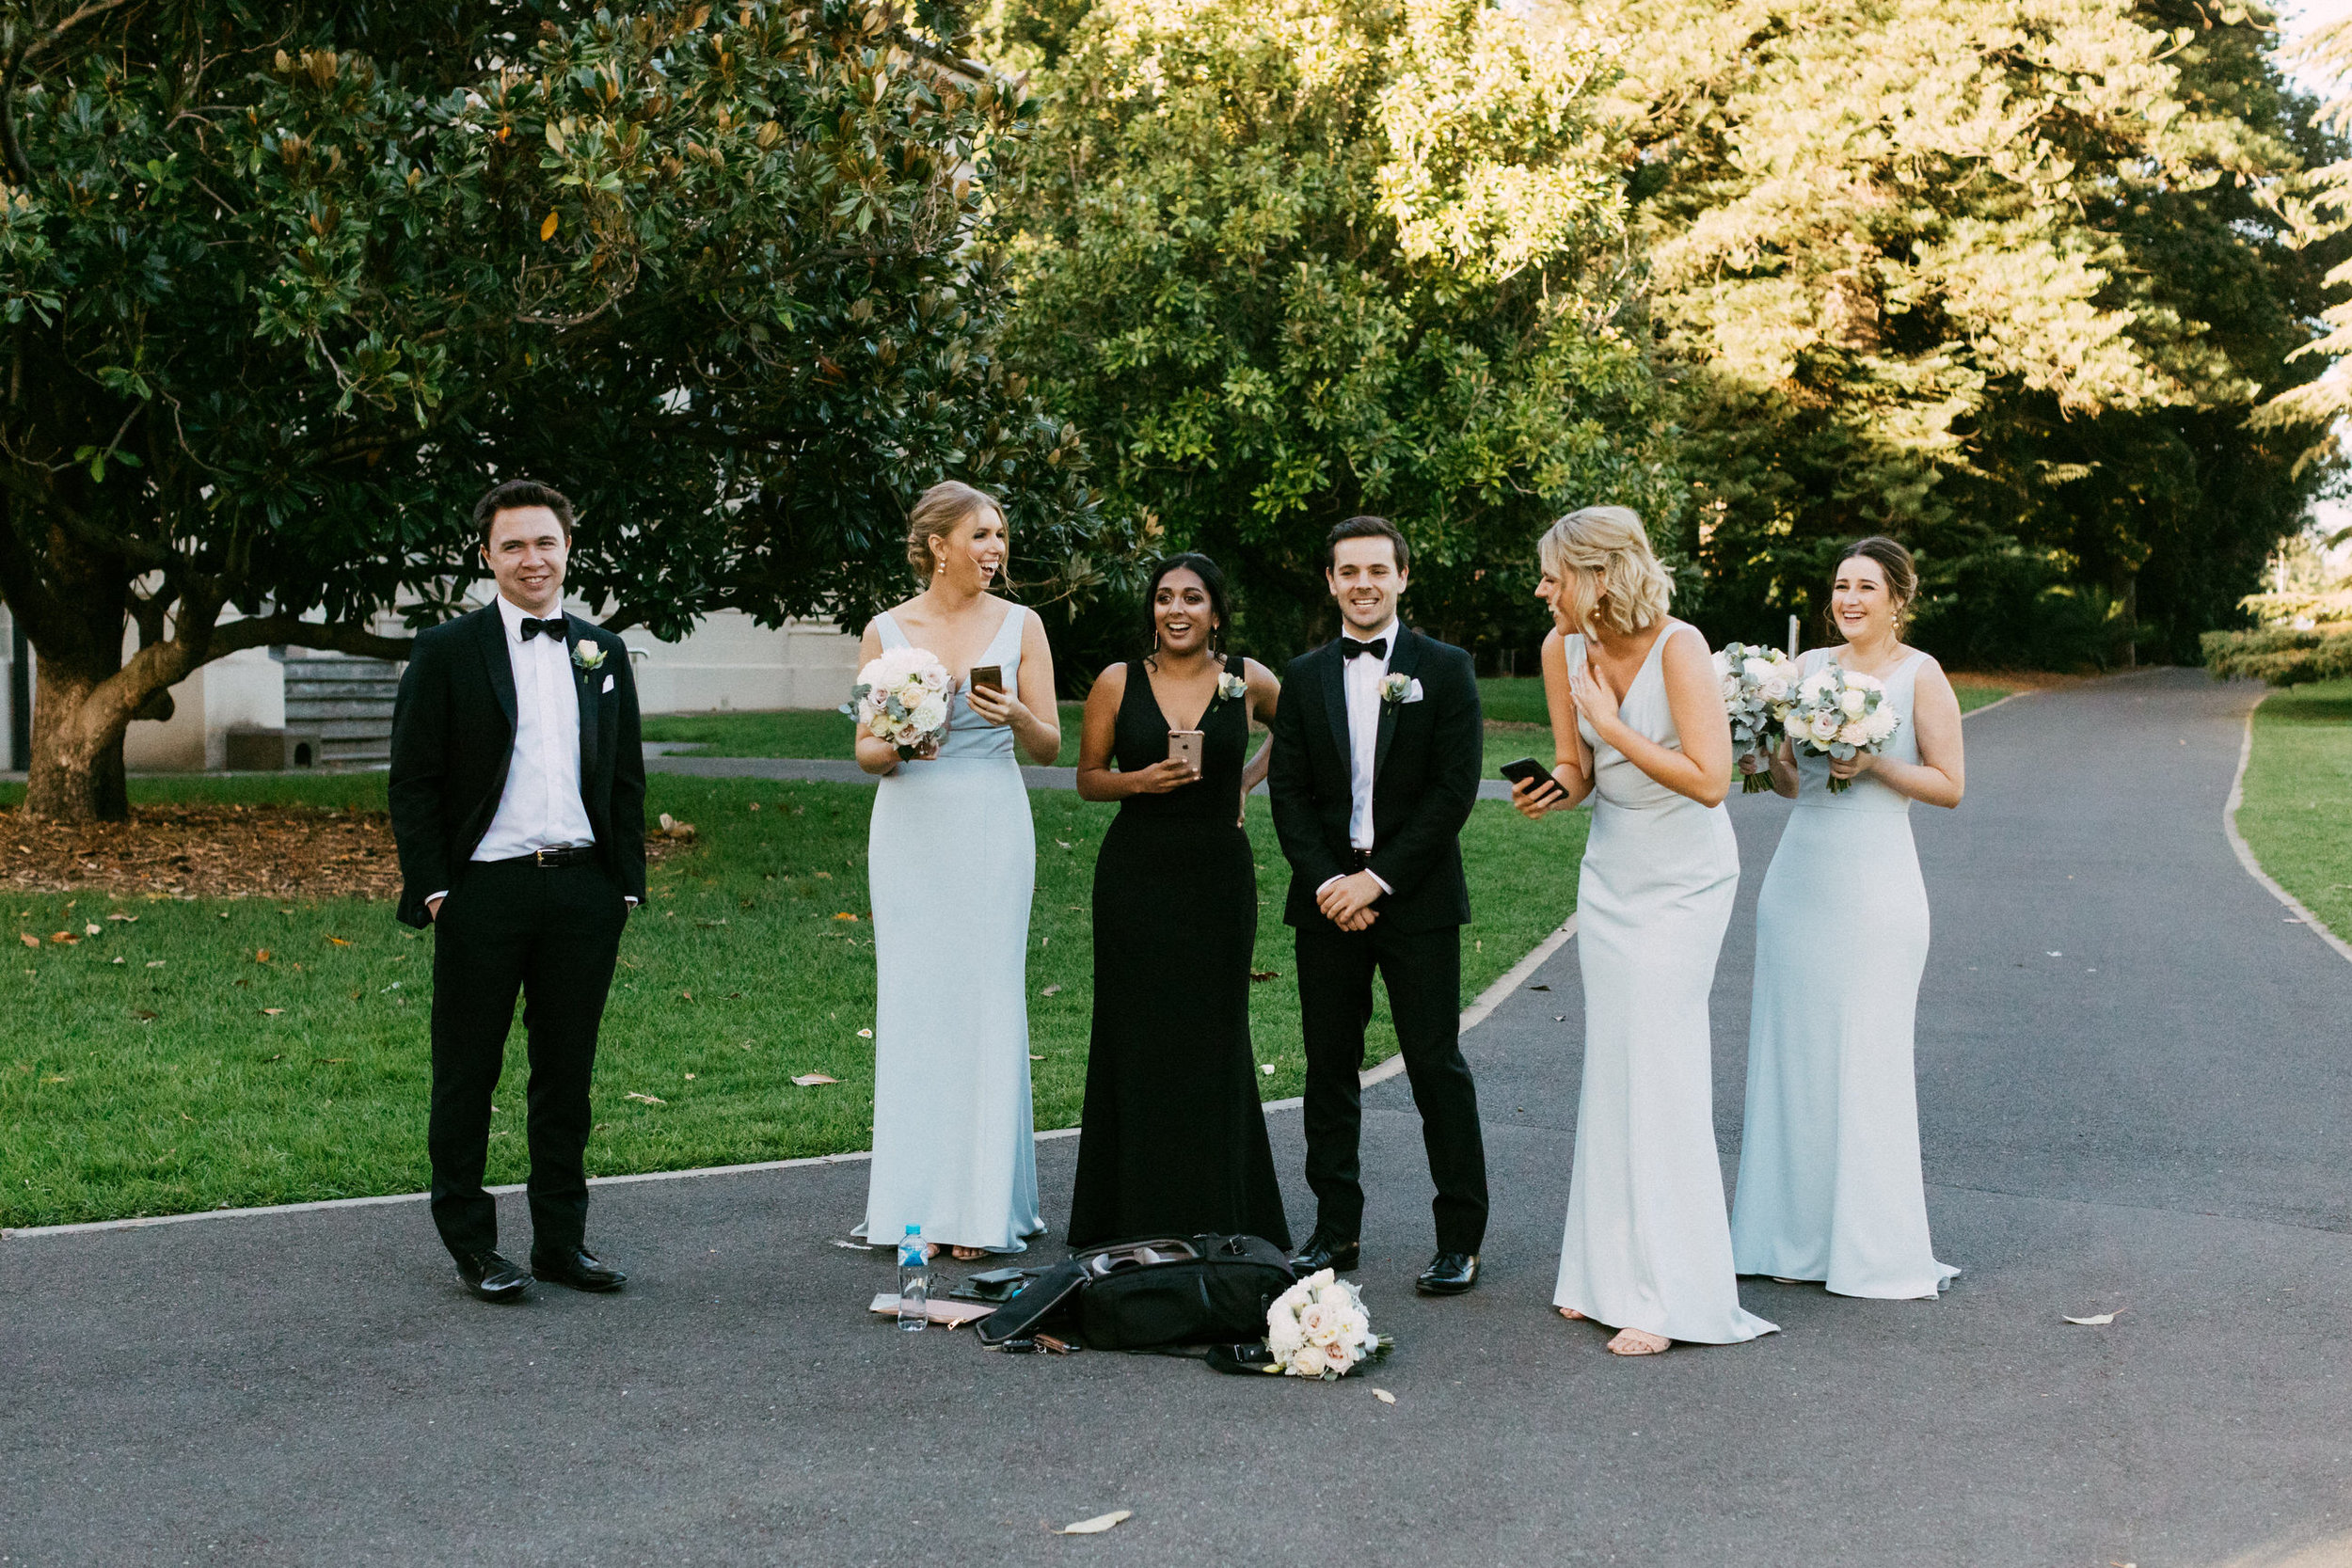 Adelaide Wedding 2019 105.jpg